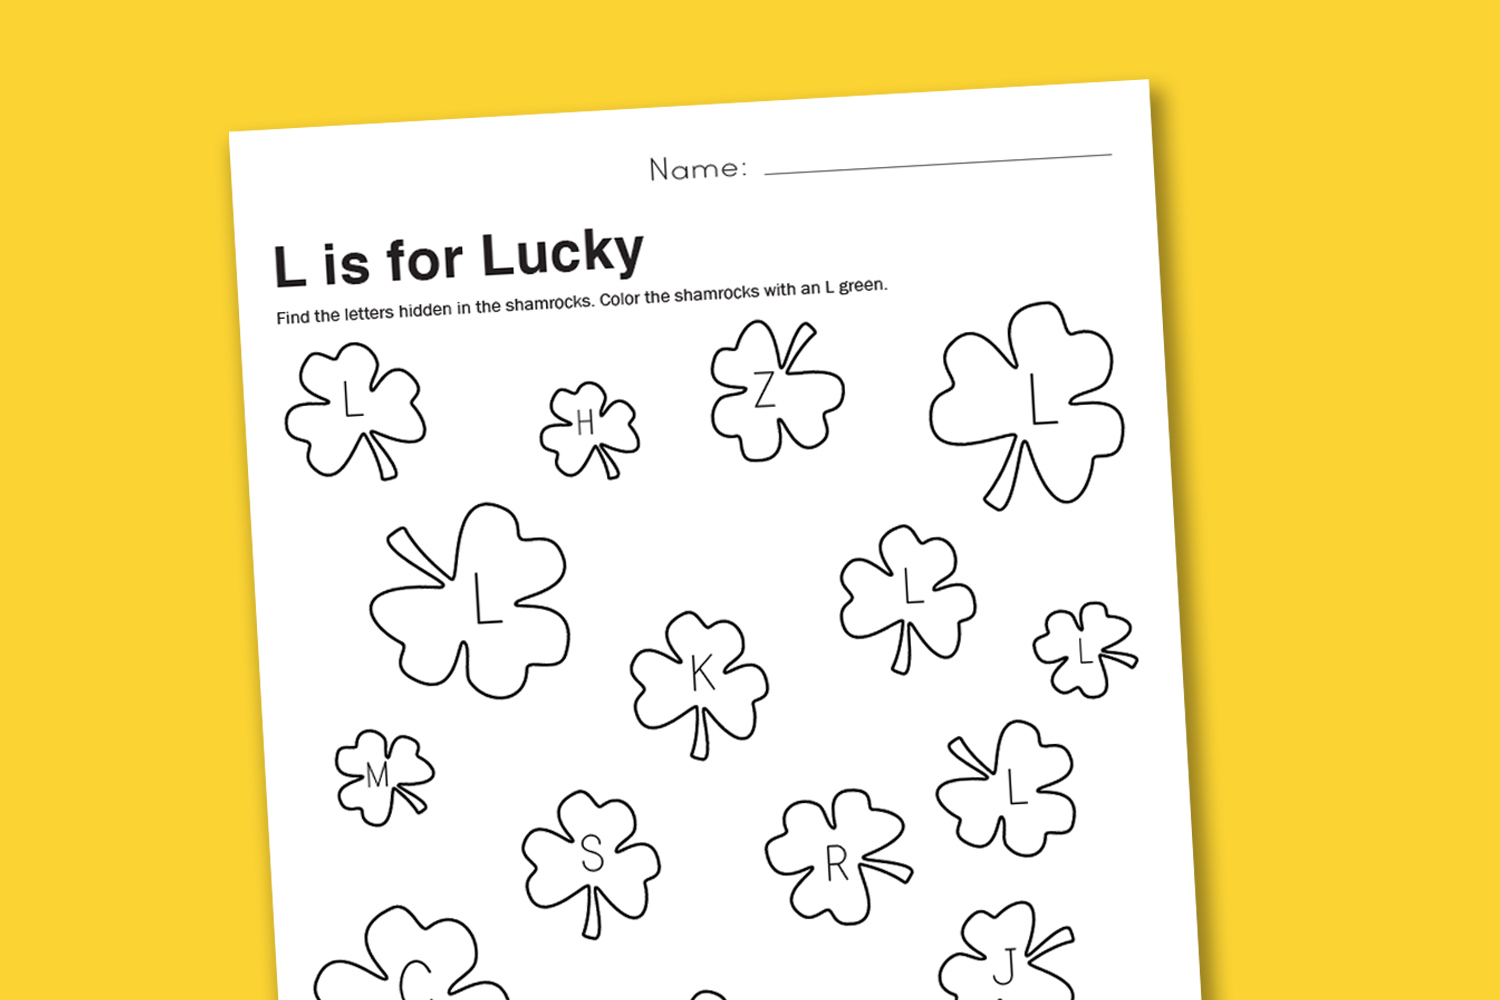 Worksheet Wednesday L Is For Lucky